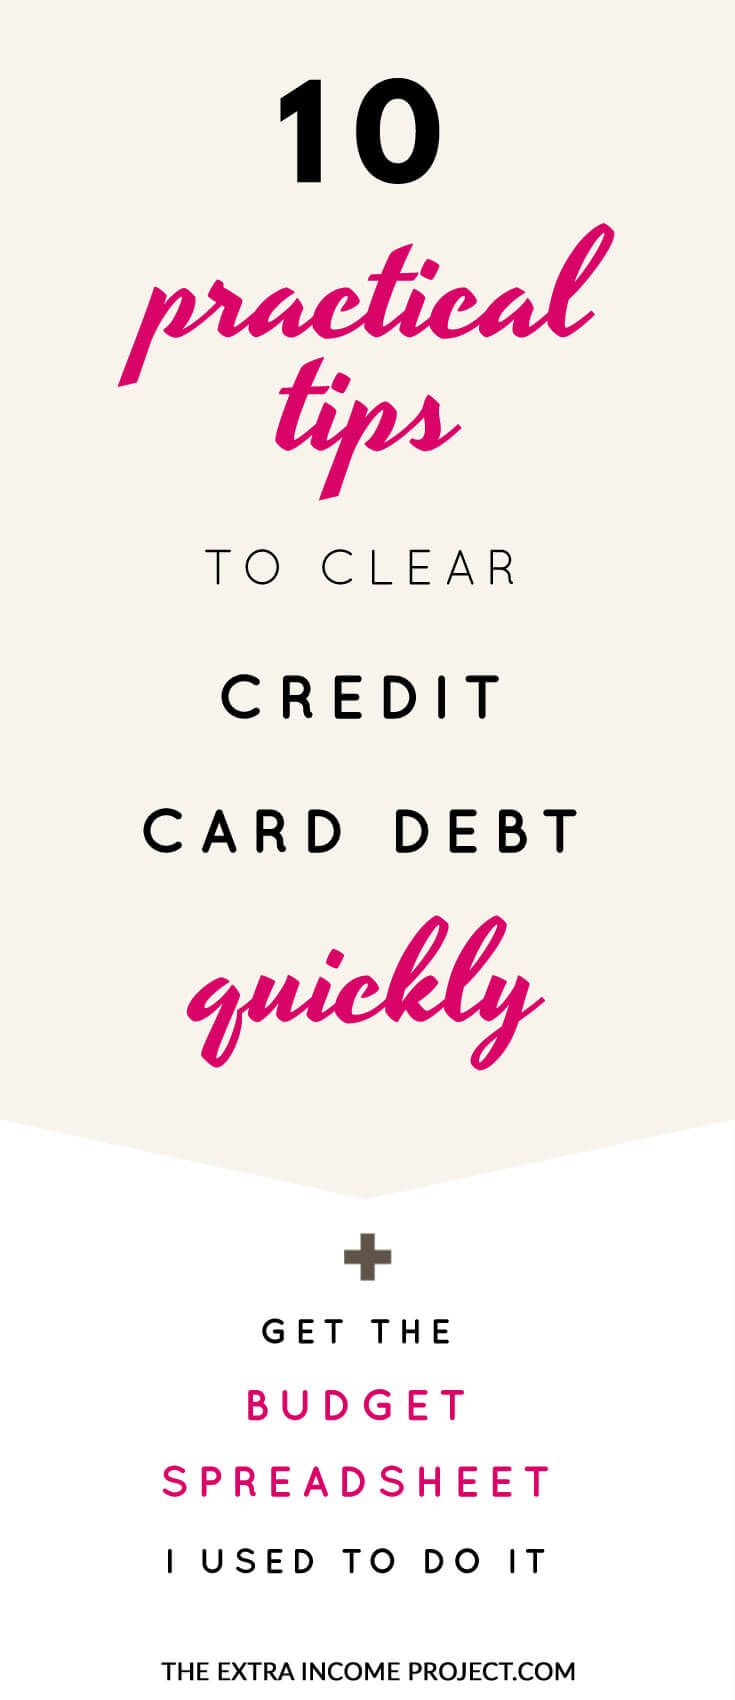 10 practical tips to clear credit card debt quickly free for Quick will template